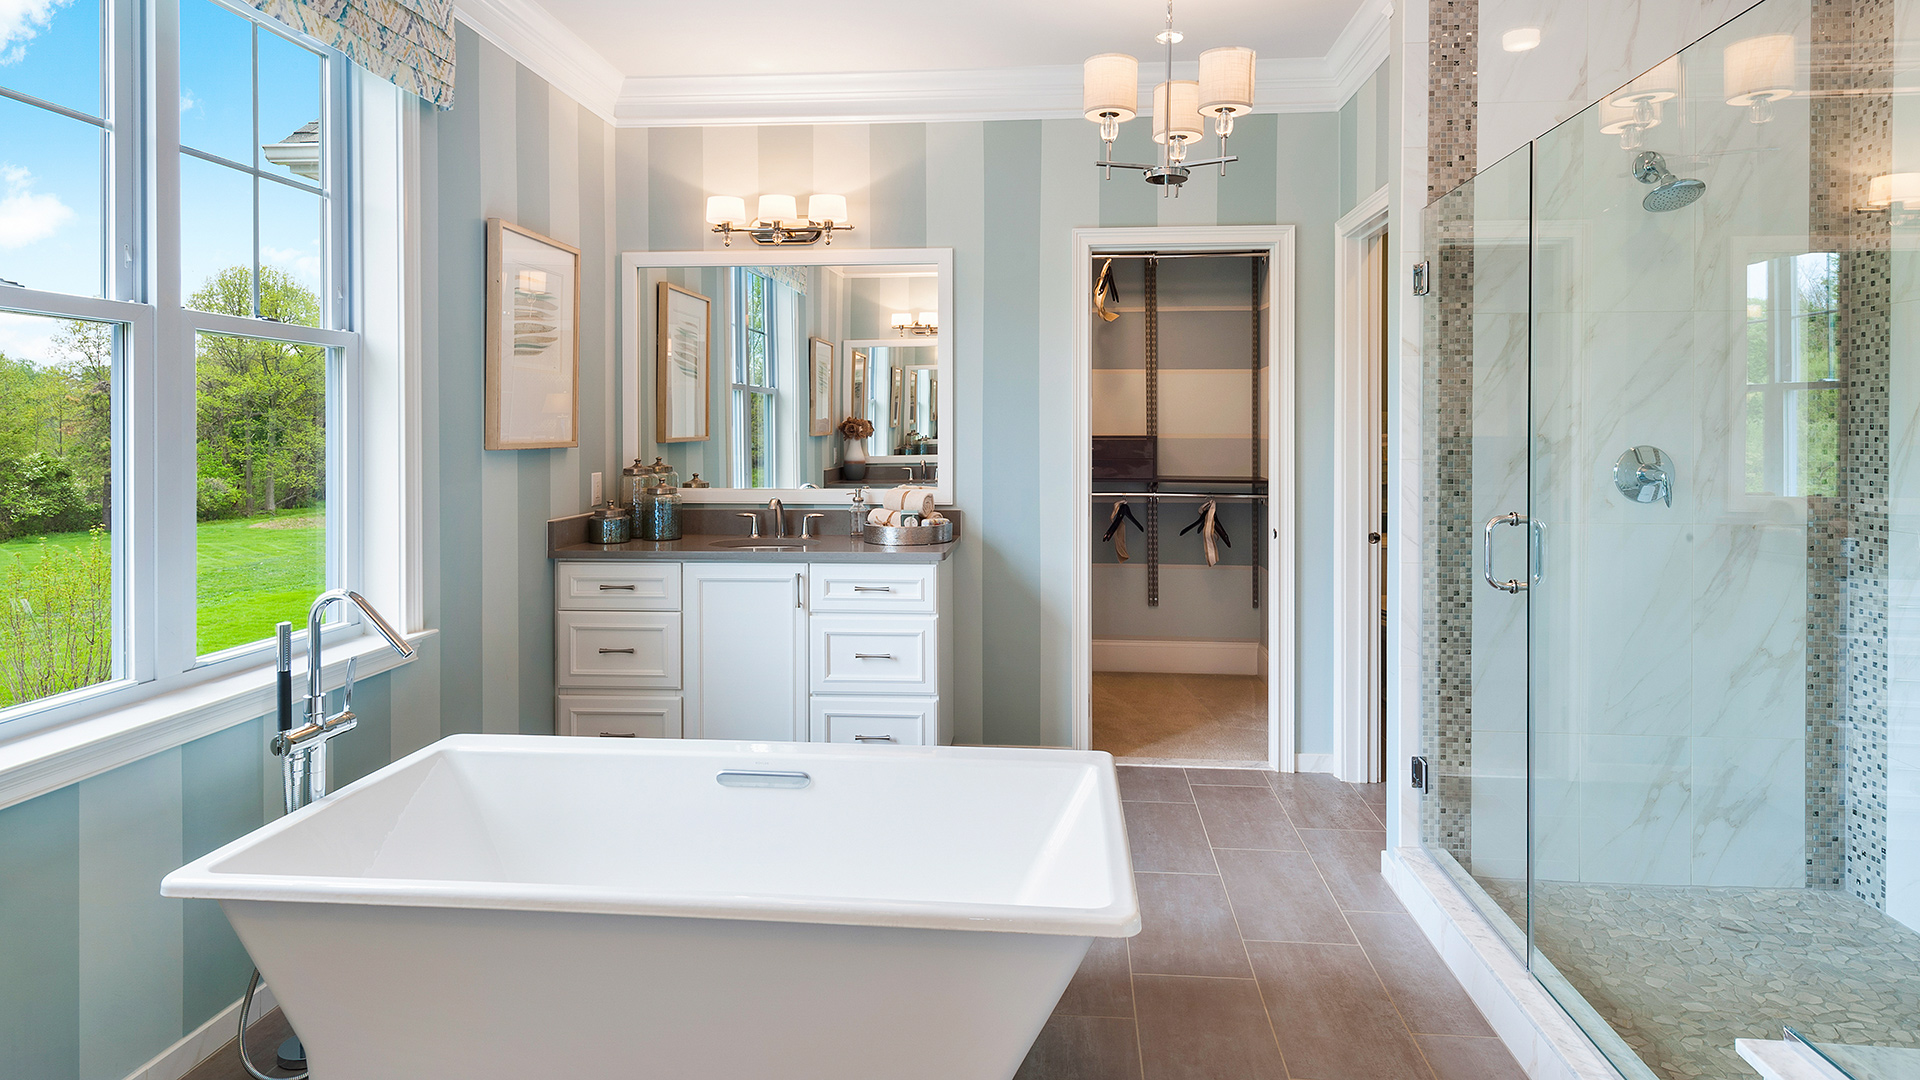 Luxury Bathrooms Photo Gallery bathroom inspiration gallery | toll brothers® luxury homes